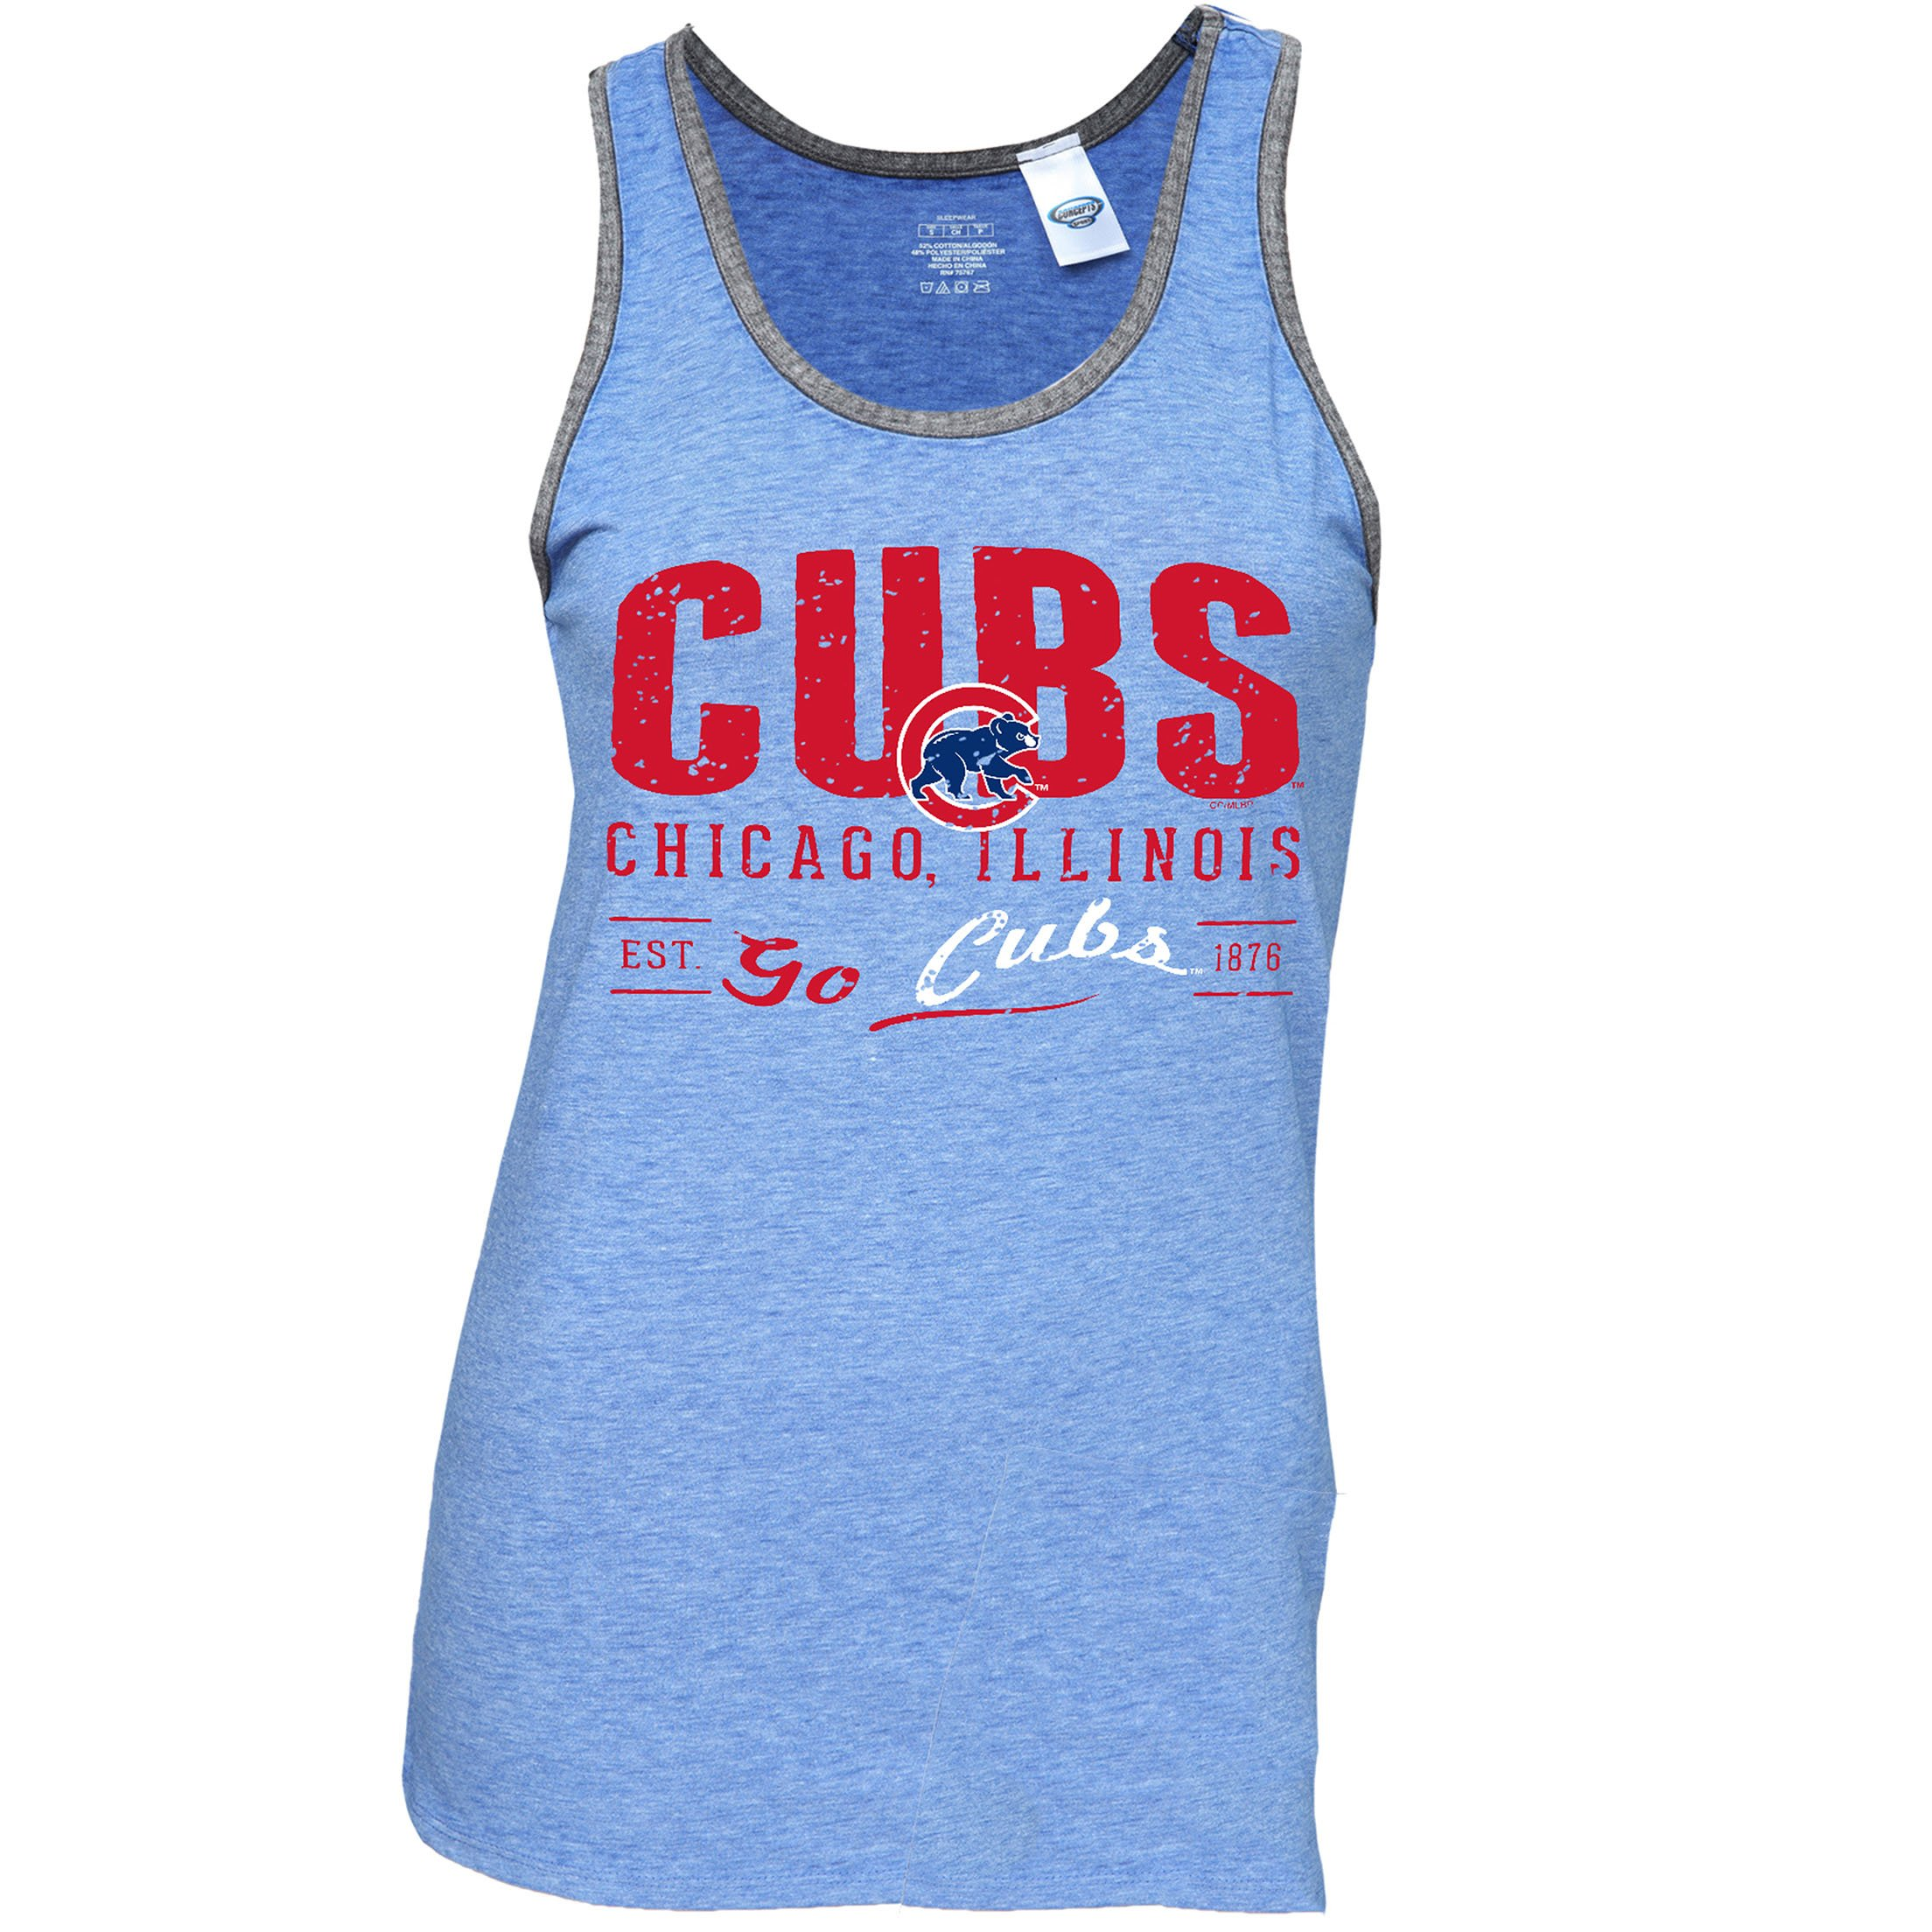 a928ac5b3ae209 Chicago Cubs Women s Royal Soft Burnout Trimmed Tank Top